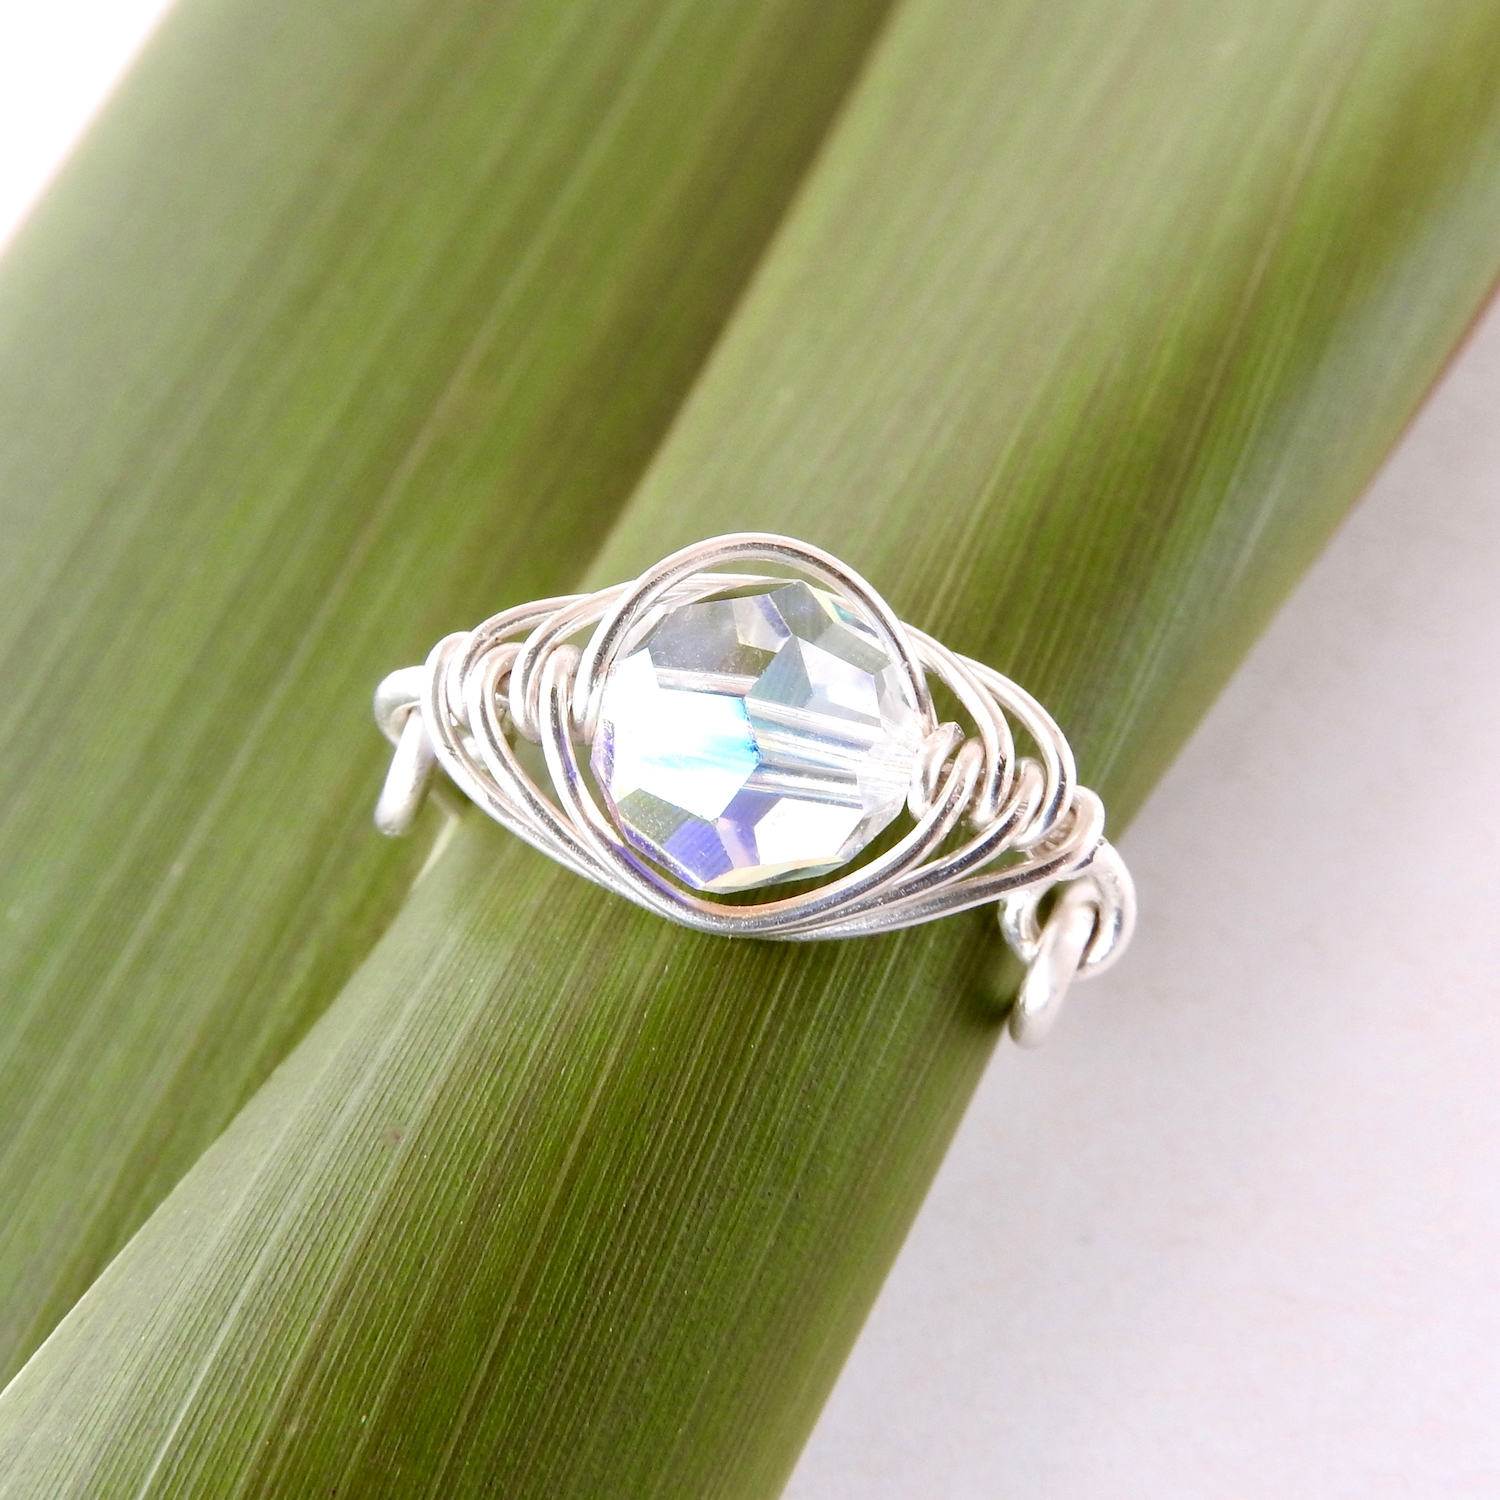 Pod pea 'diamond' ring for April with Clear AB Swarovski Crystal